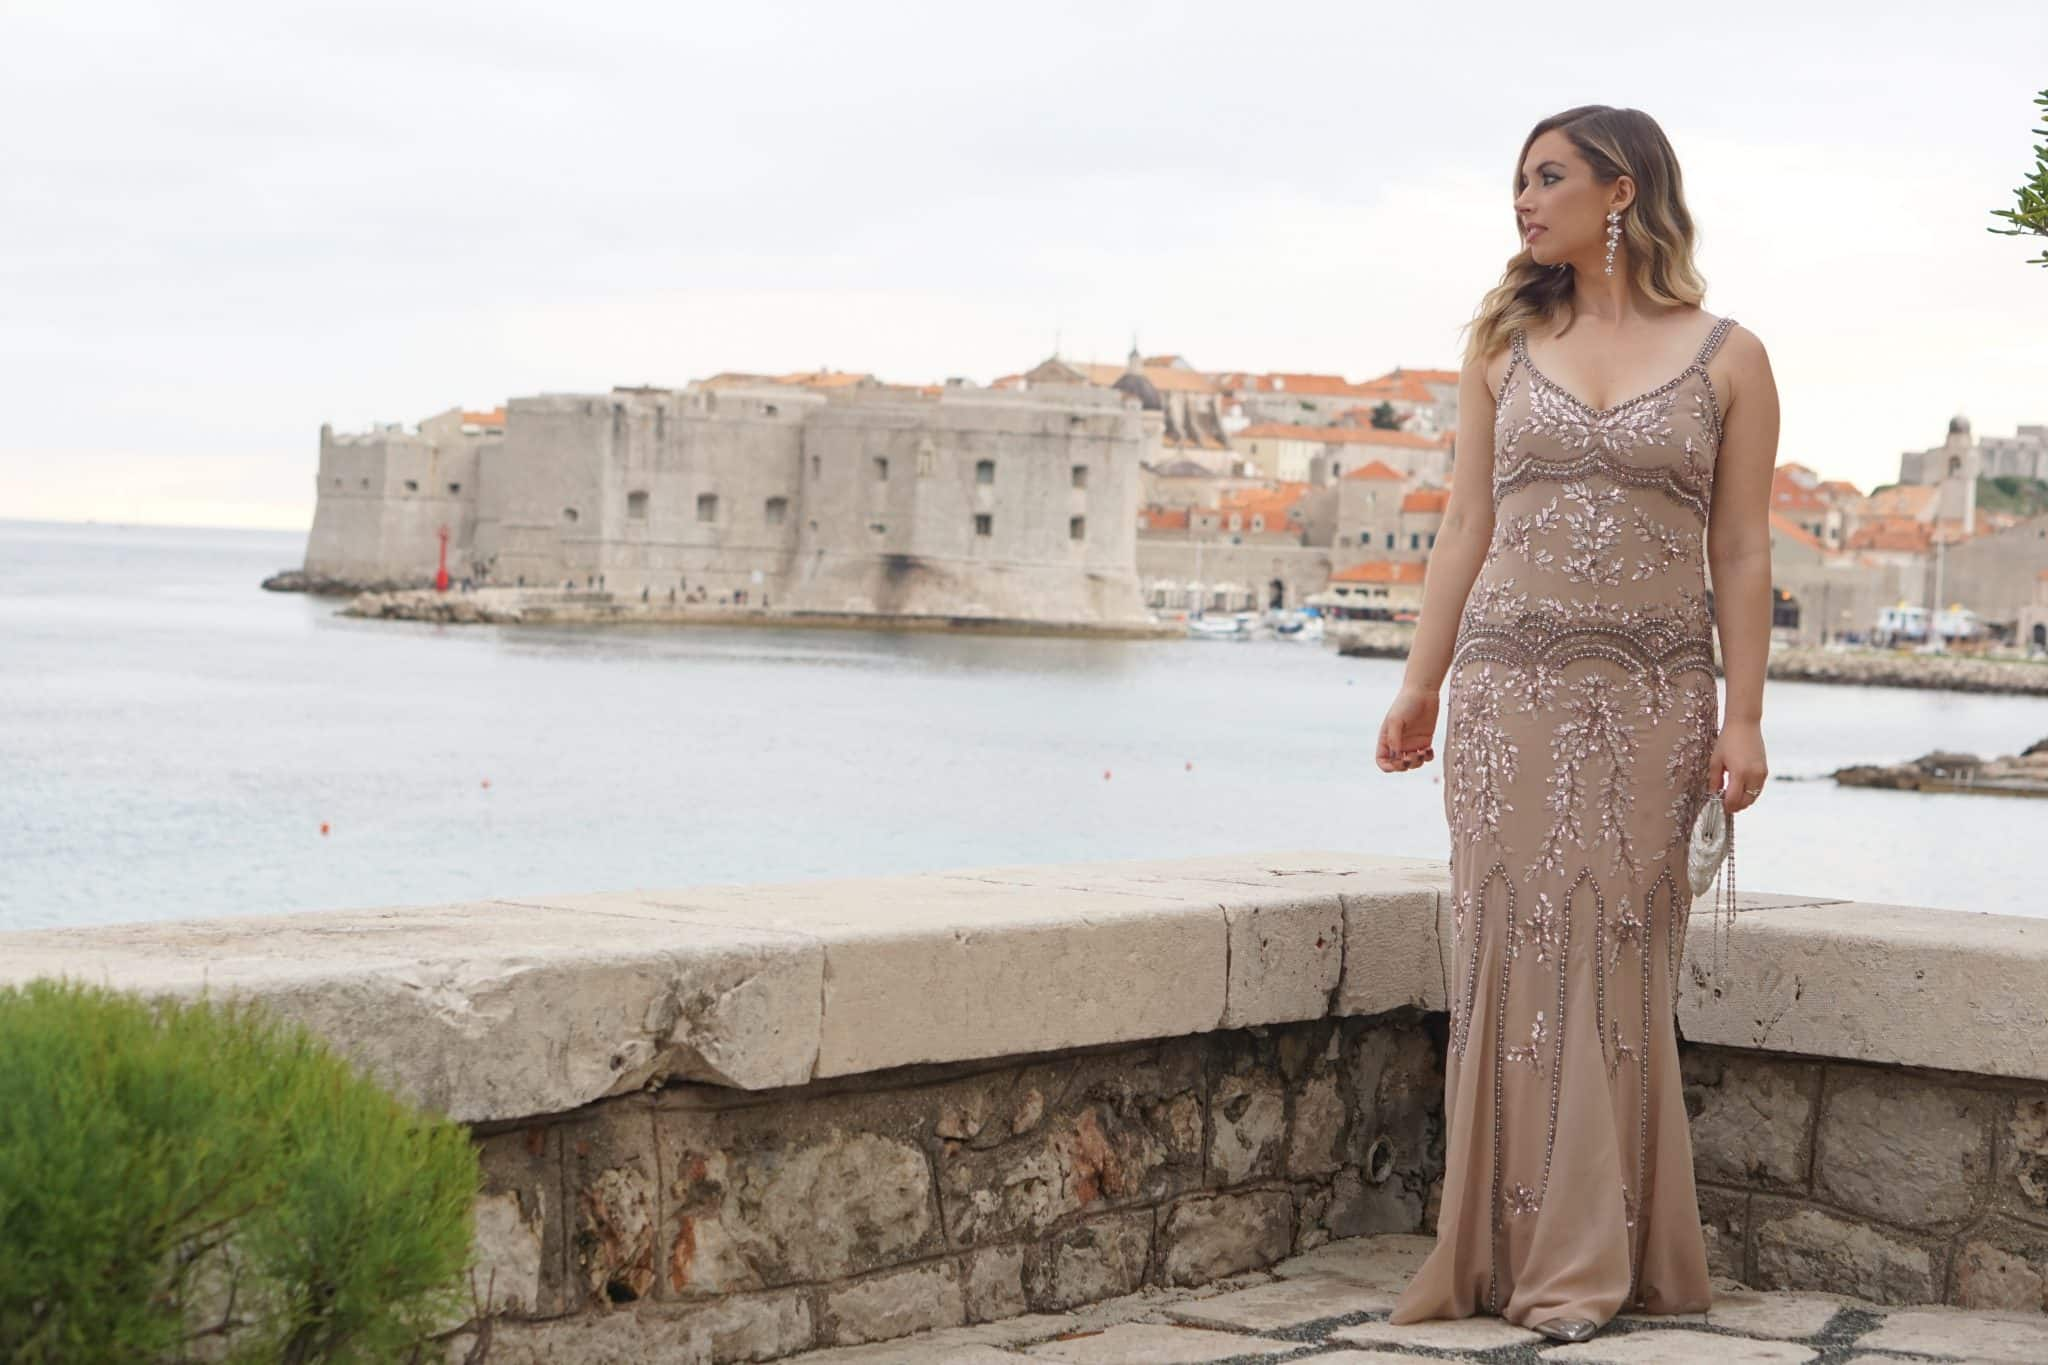 Dubrovnik Diaries: Two Becoming One (A Wedding Story)